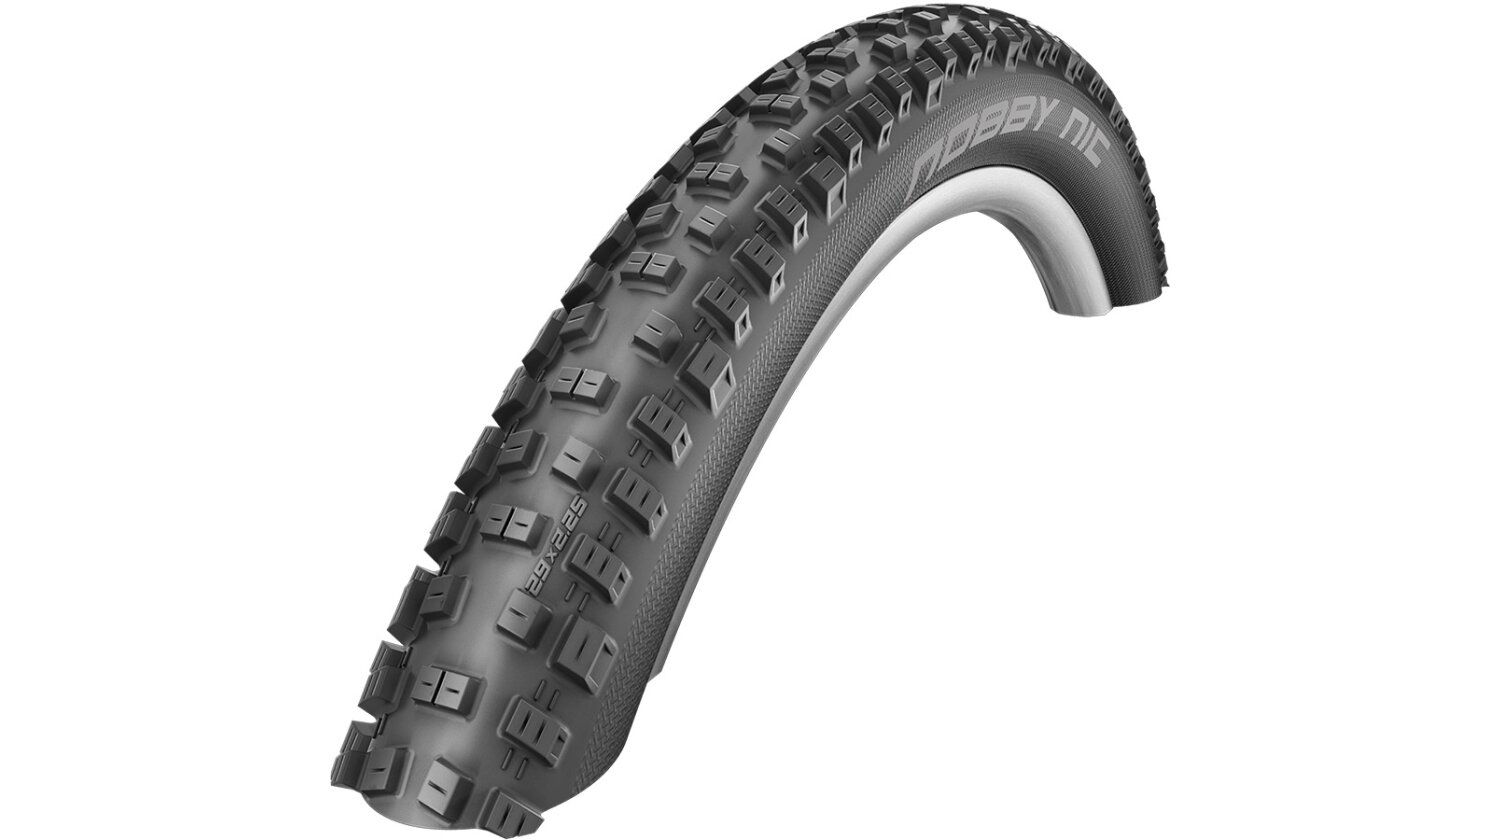 Schwalbe Nobby Nic Evolution 29 Faltreifen 57-622 Double Defense, TL Easy, PaceStar